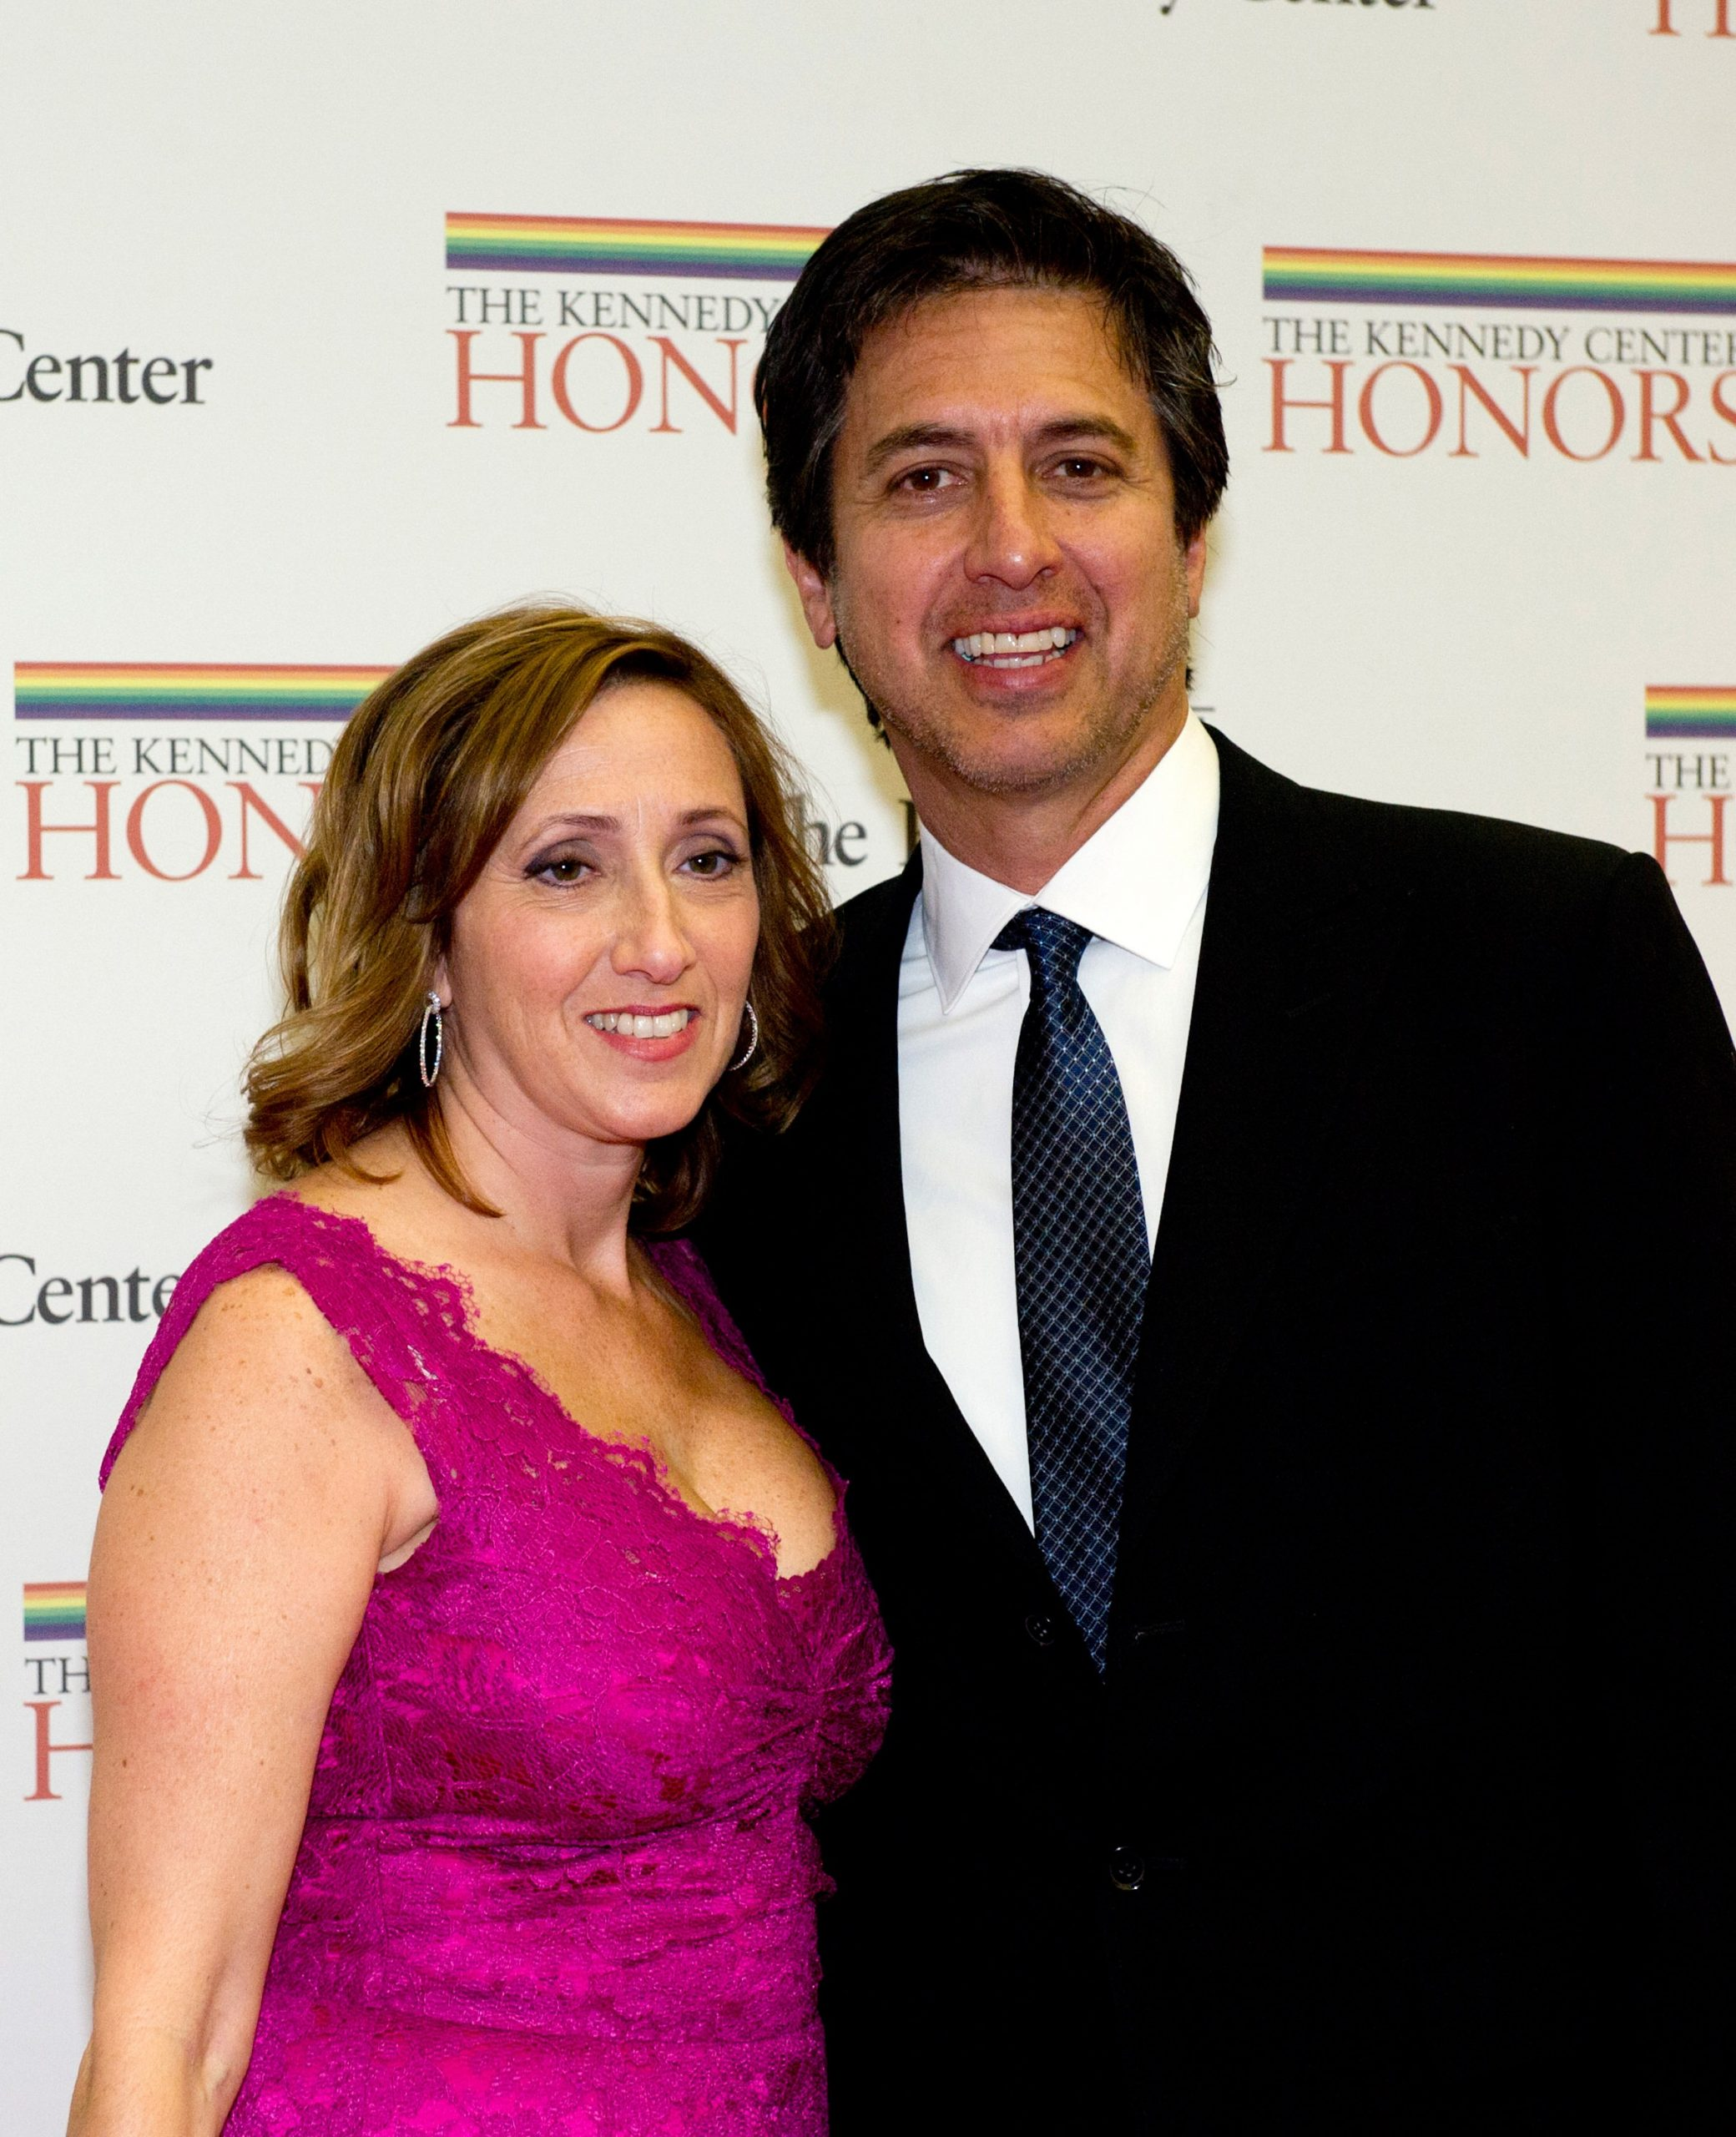 ray romano and his wife anna on a red carpet